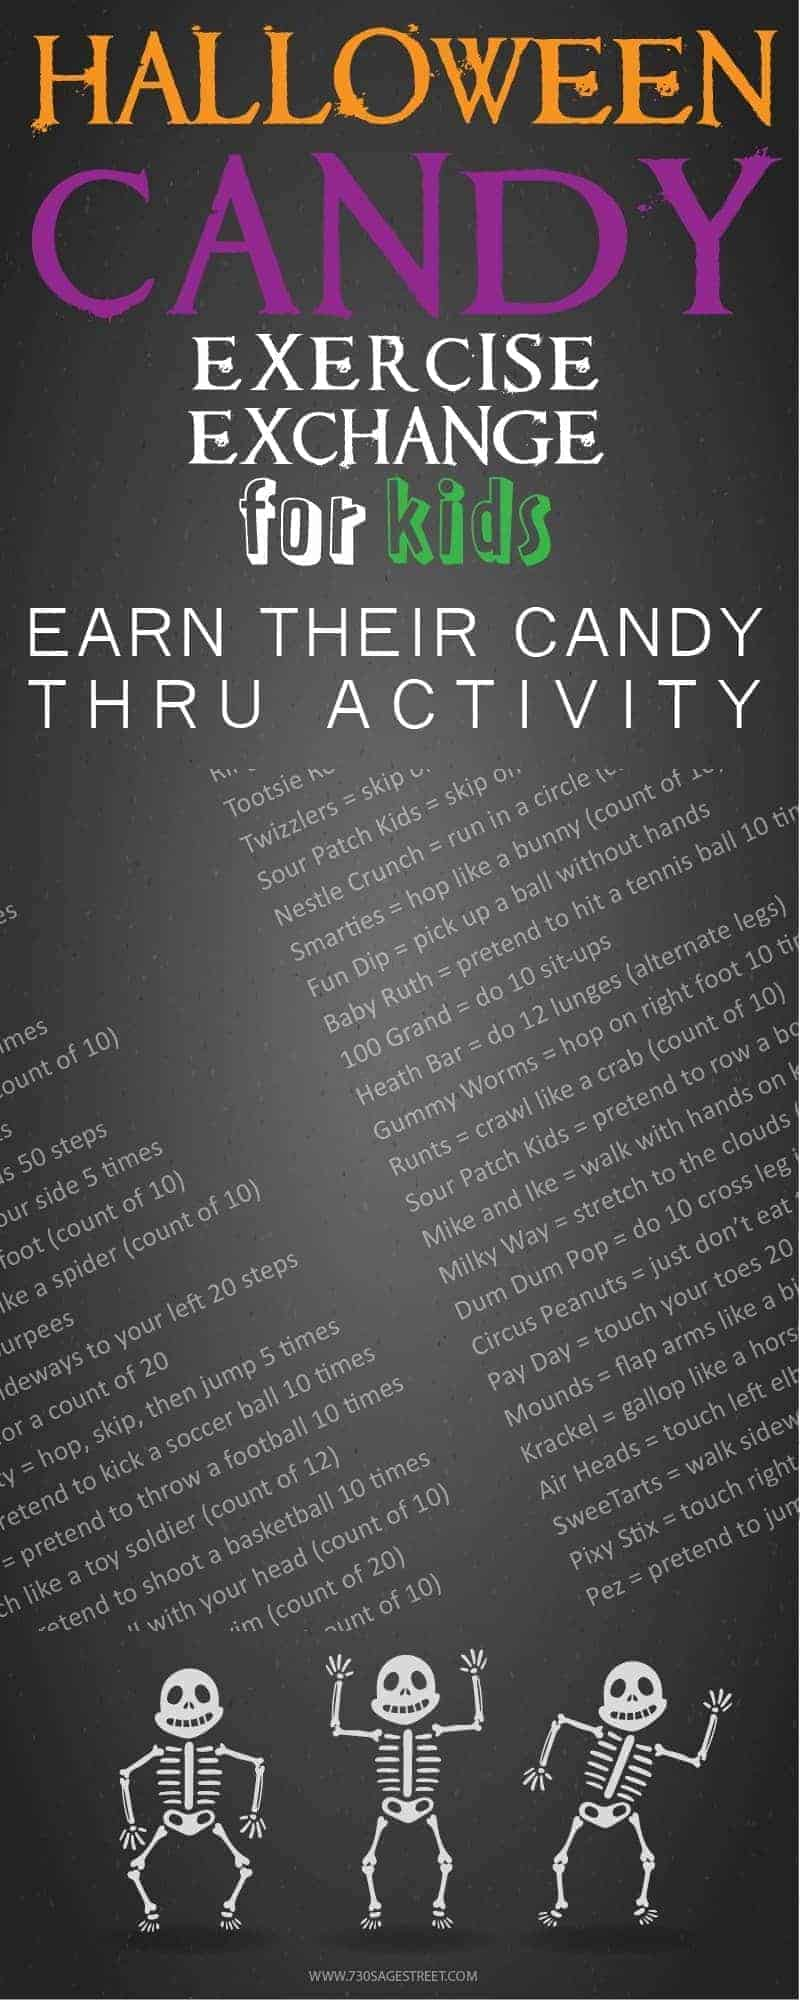 With this FREE printable Halloween Candy Exercise Exchange for Kids, they have to EARN their Halloween treats through physical activity.